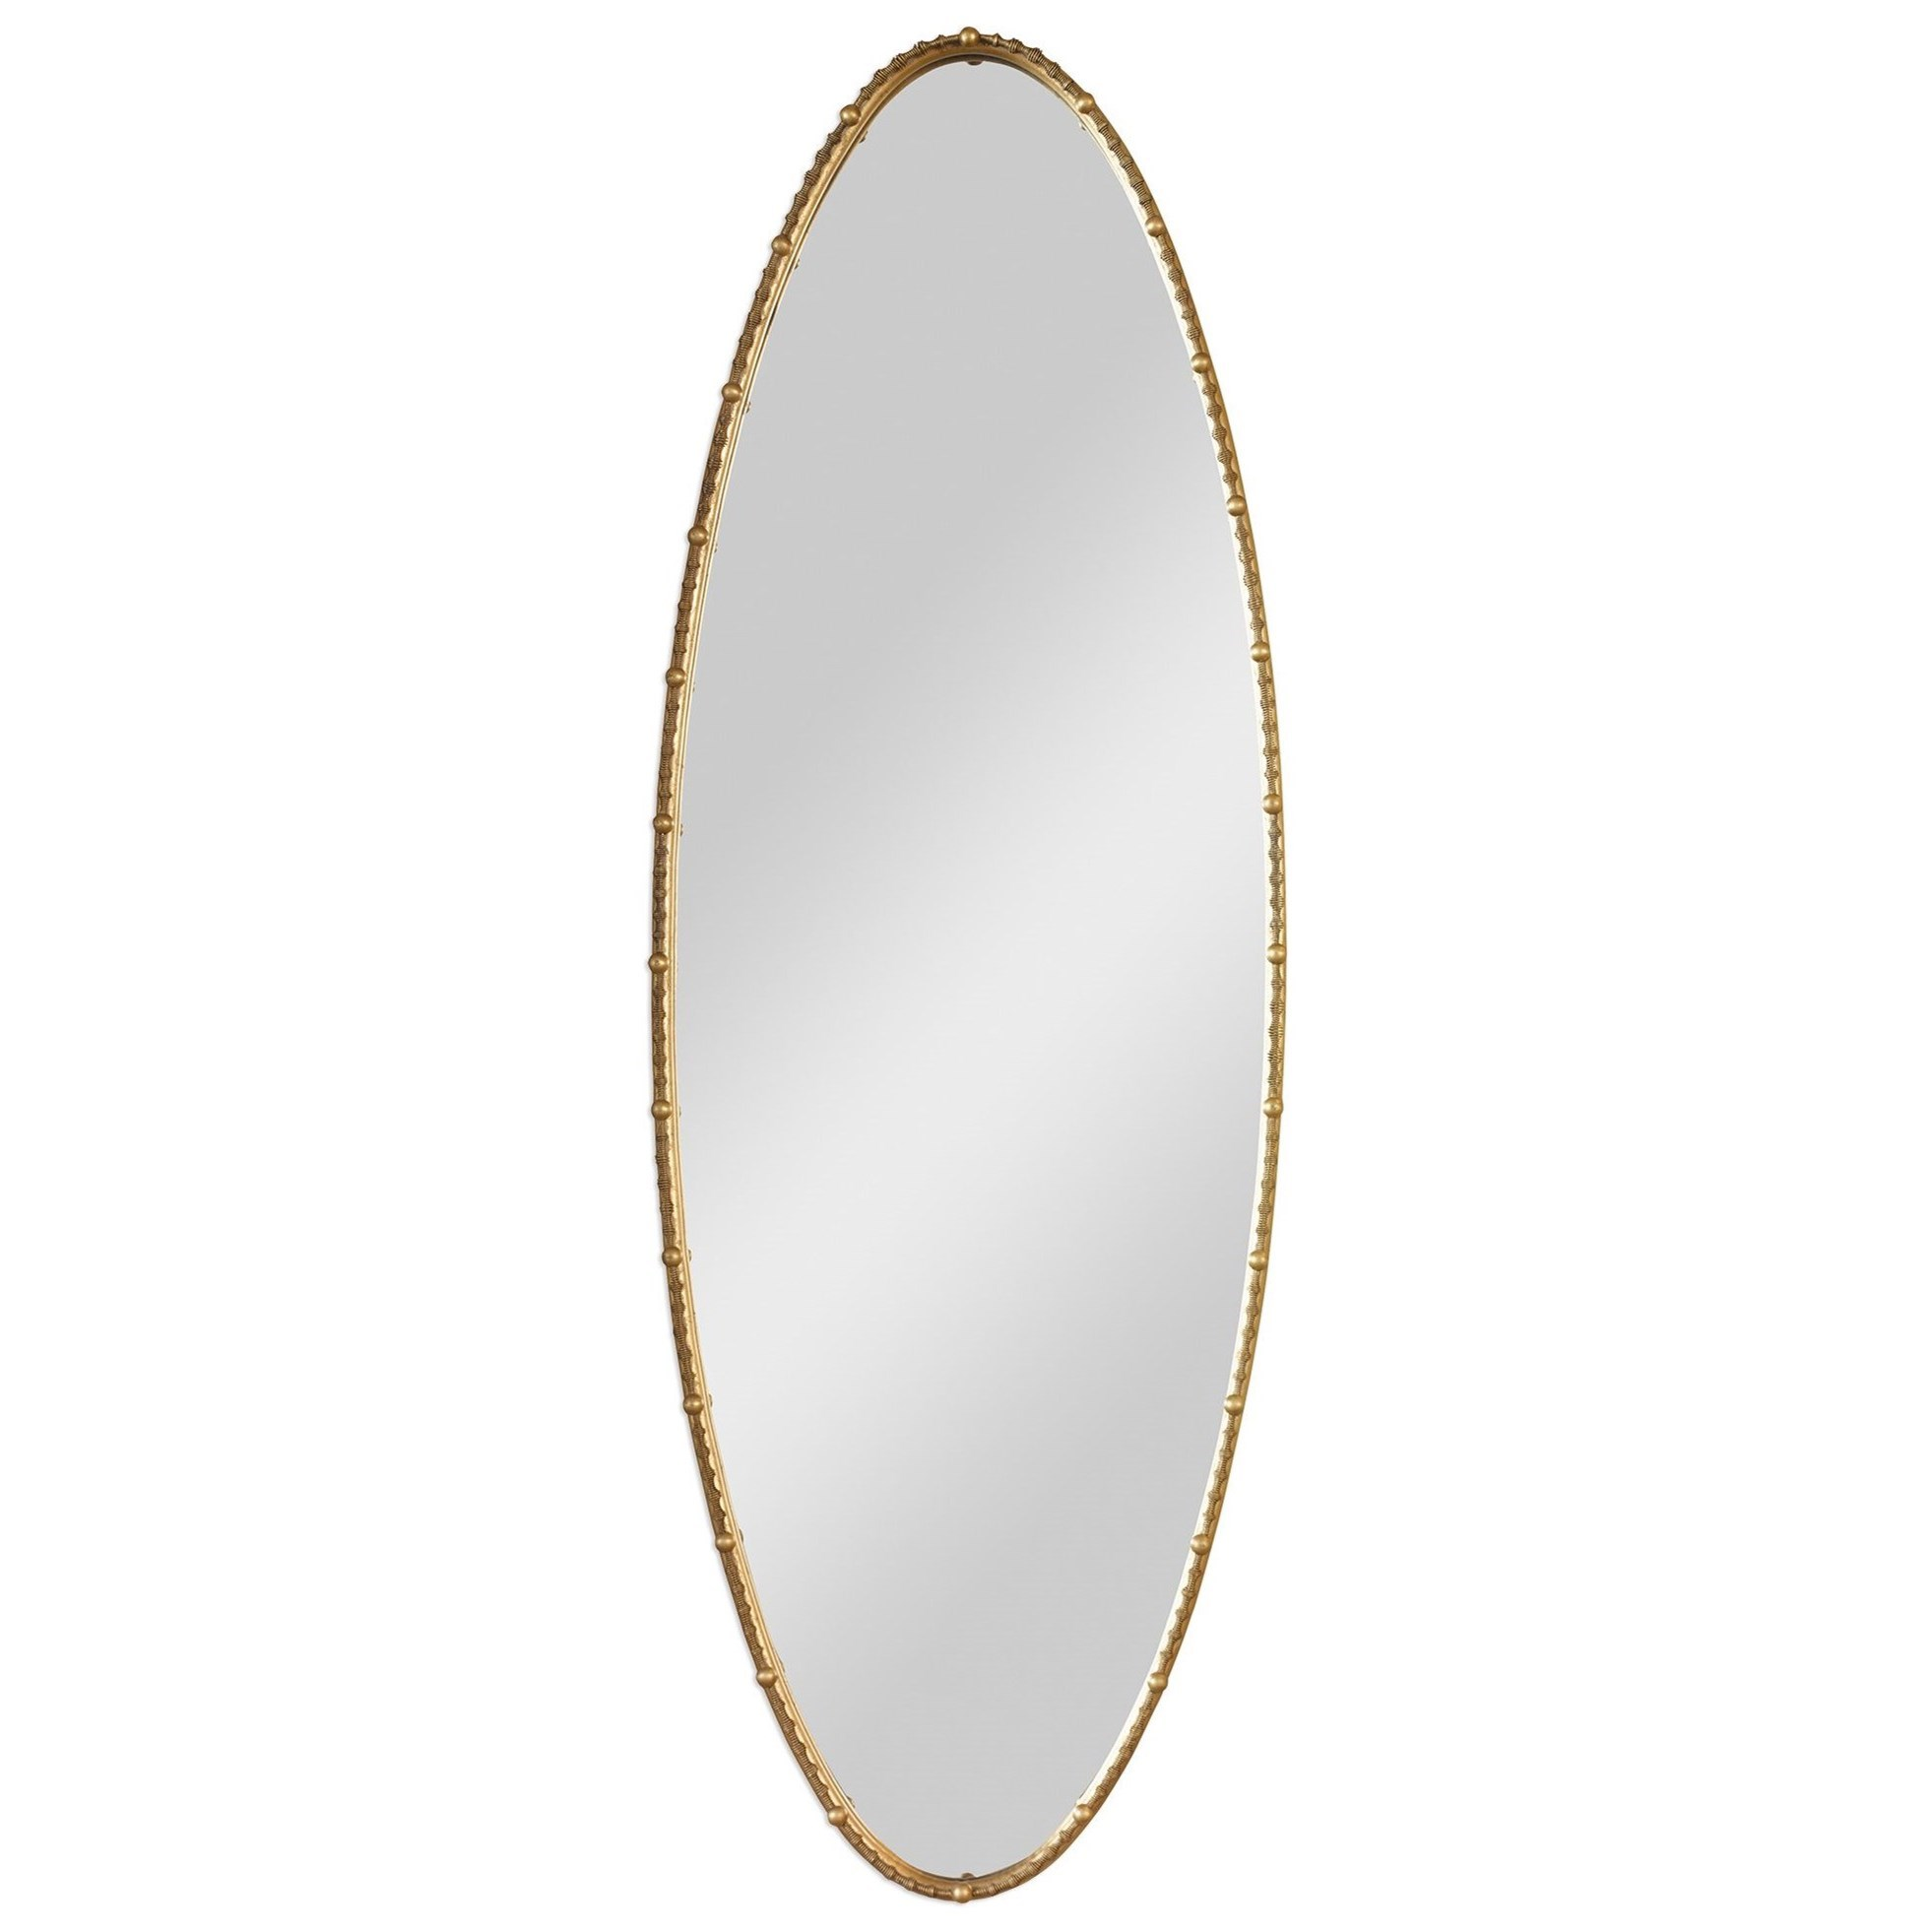 Mirrors - Oval Hadea Gold Oval Mirror by Uttermost at Miller Waldrop Furniture and Decor